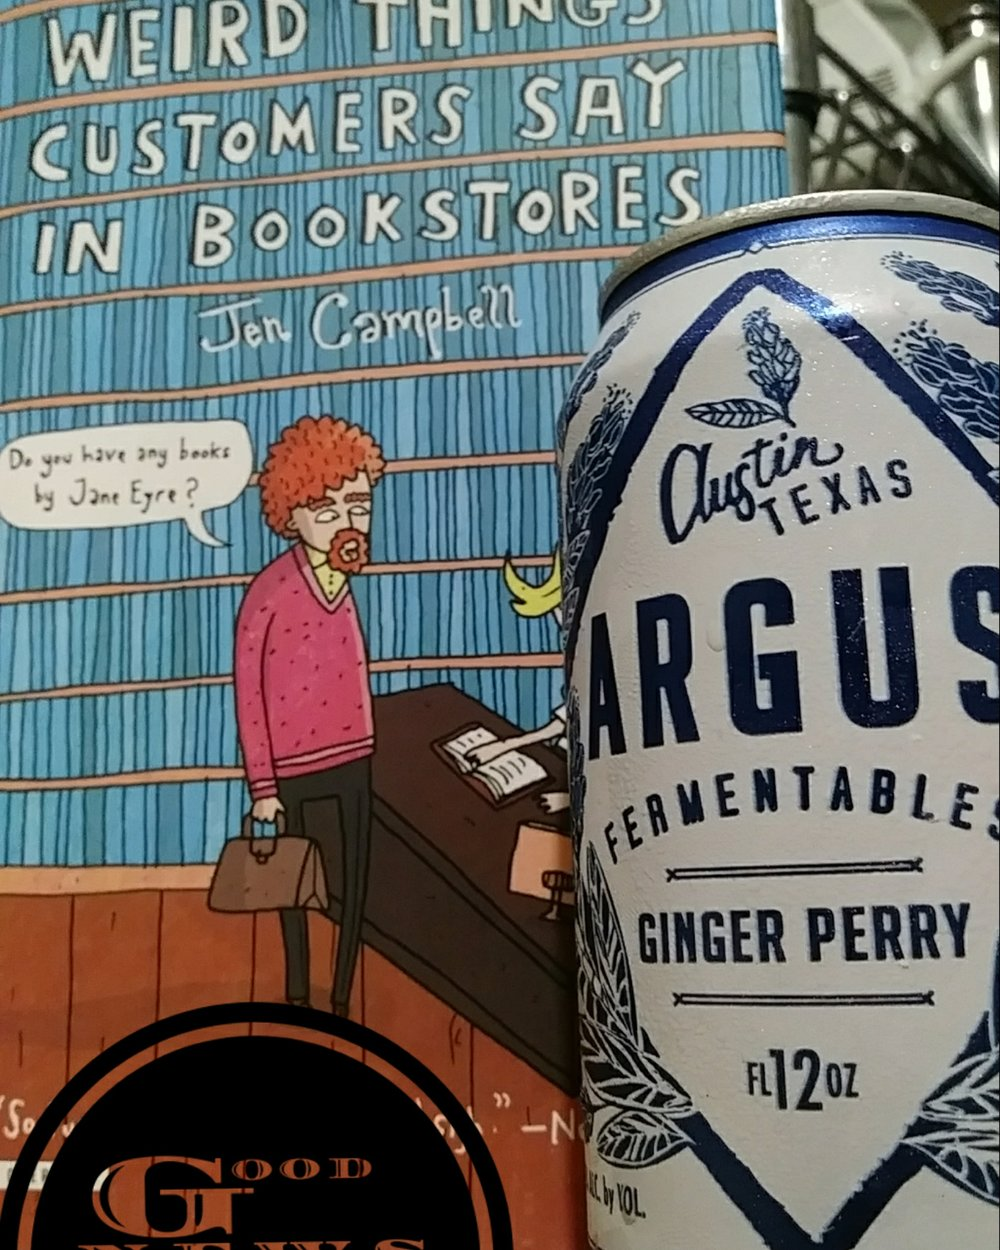 Fermentable Customers - I've worked in retail, and customer based jobs, most of my life, so this book resonated with me. It's a quick, funny read, and if you've worked with customers you'll get a kick out of this.This Ginger Perry beer was a great pairing with this book. Lively on the tongue, and kept me interested while relaxing me enough to find these customers antics more humorous than annoying.Always say thank you to retail workers, most likely they've put on a smile while being treated like dirt.